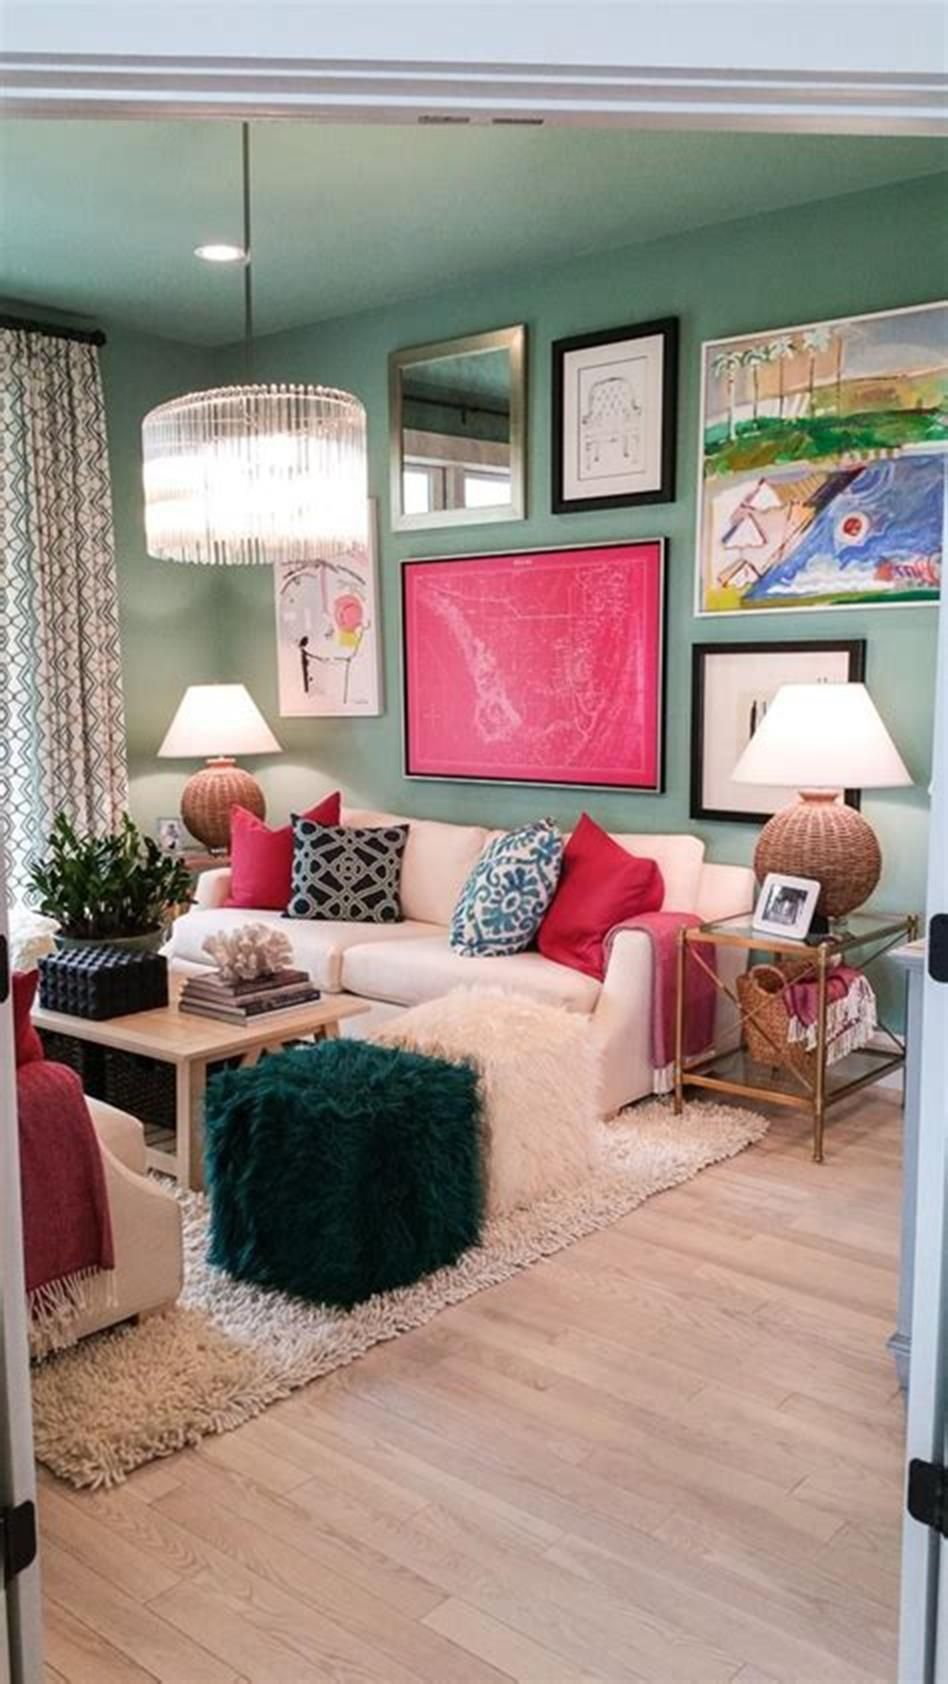 45 Simple Living Room Decorating Ideas On A Budget 2019 Comedecor Hgtv Dream Home 2016 Dream Home 2016 Hgtv Dream Home